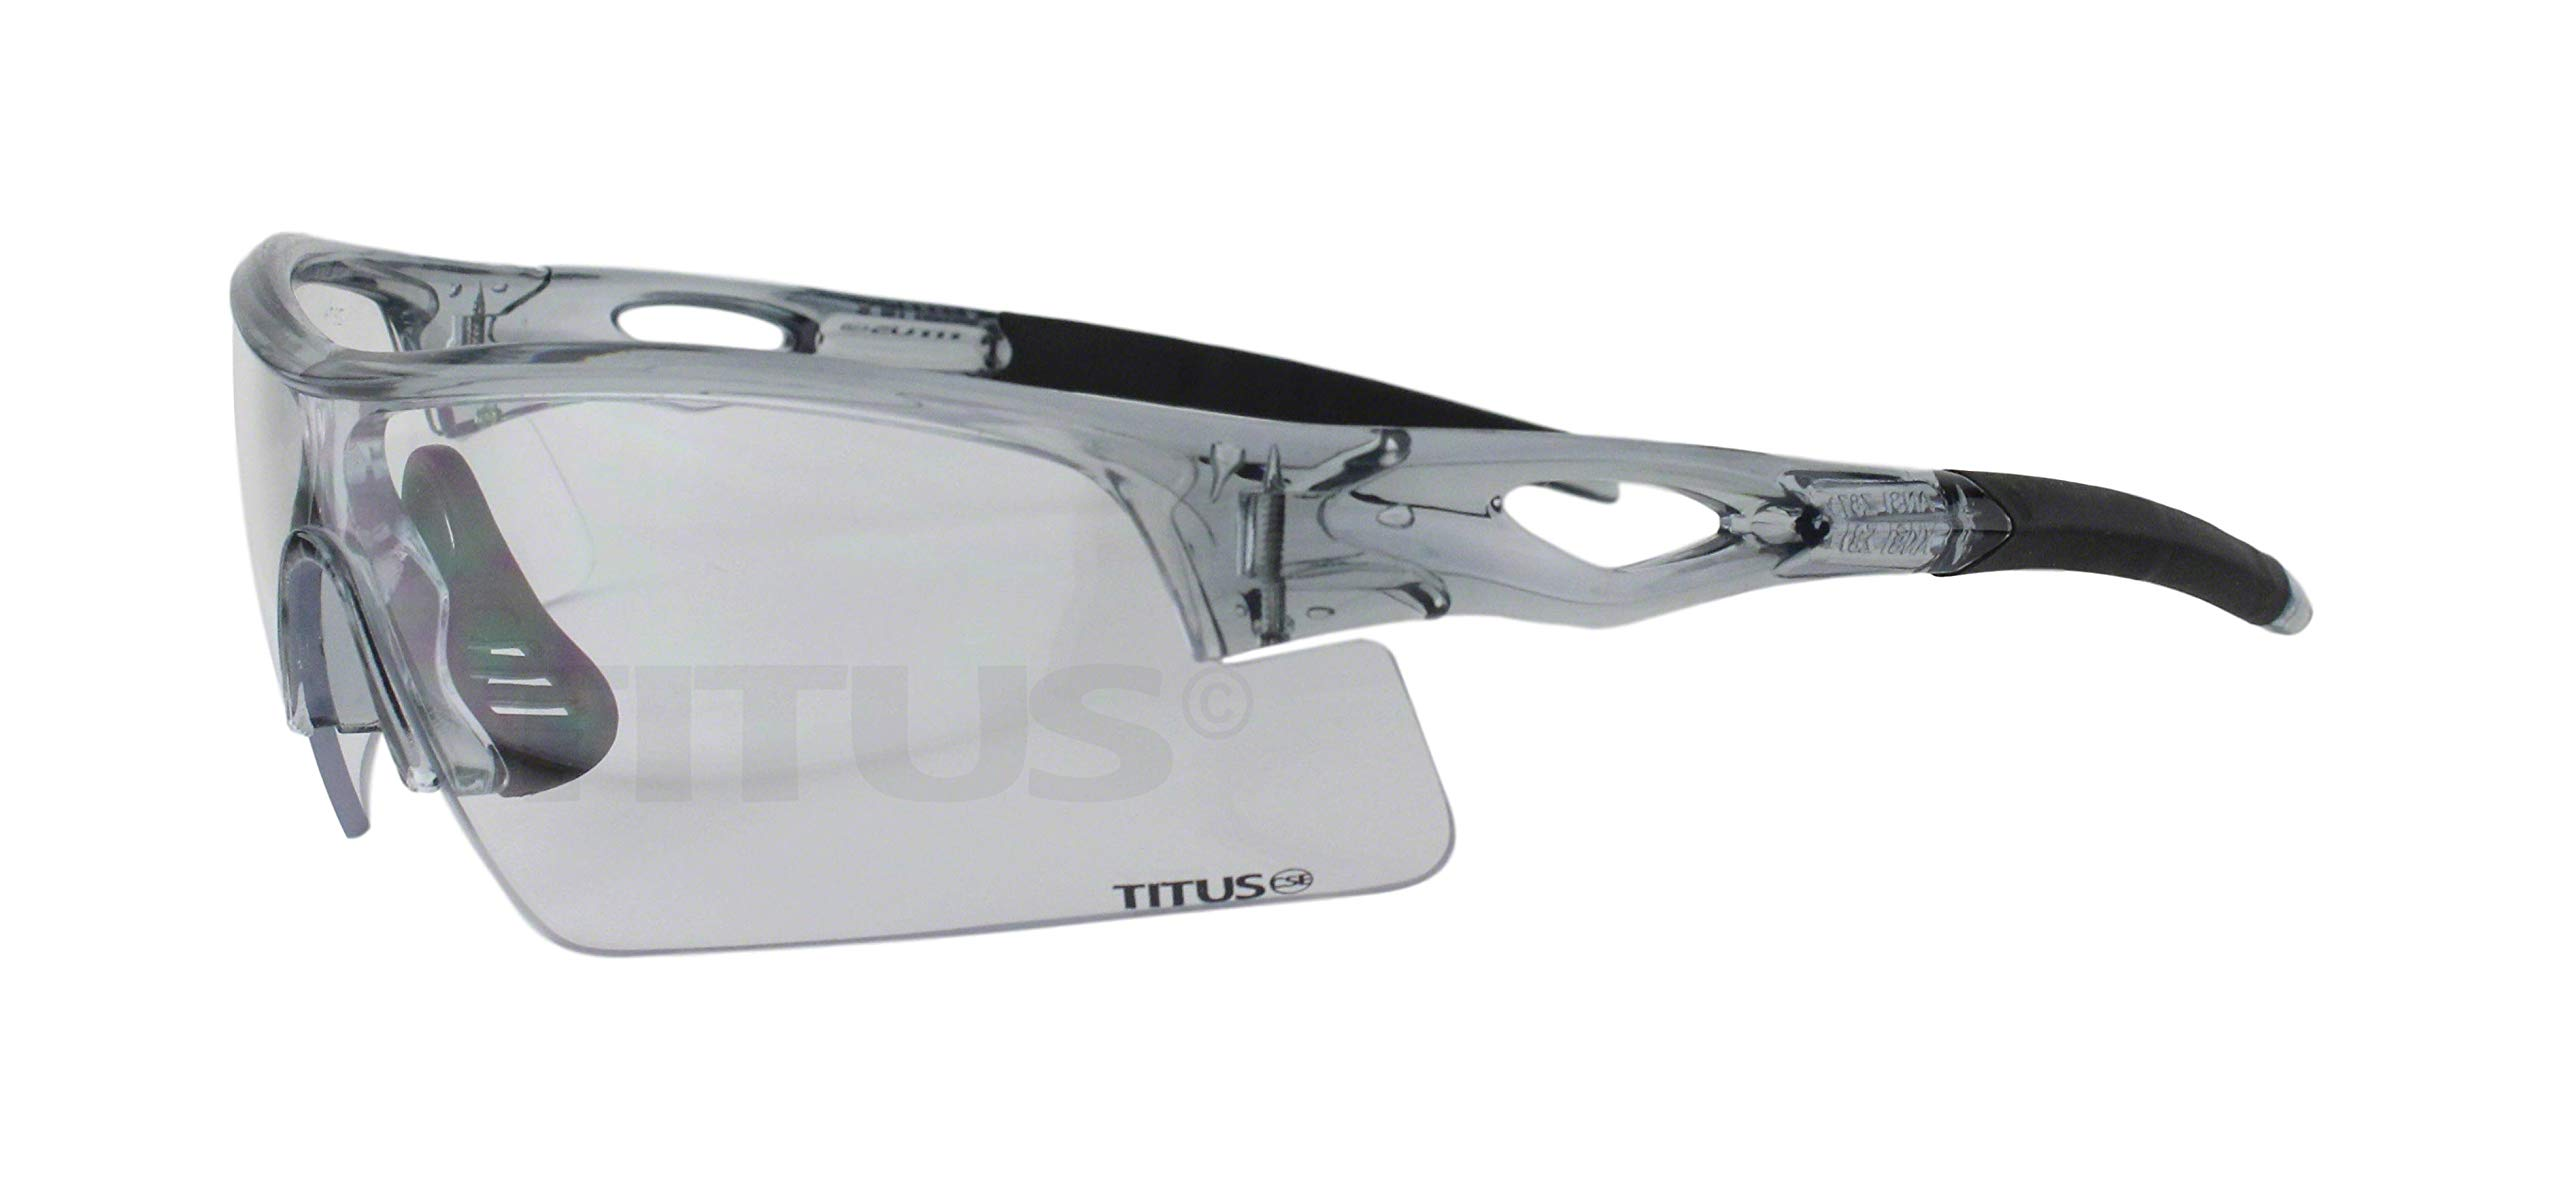 Titus All-Sports Frame Safety Glasses (Without Pouch, Grey Frame - Clear Lens) by Titus